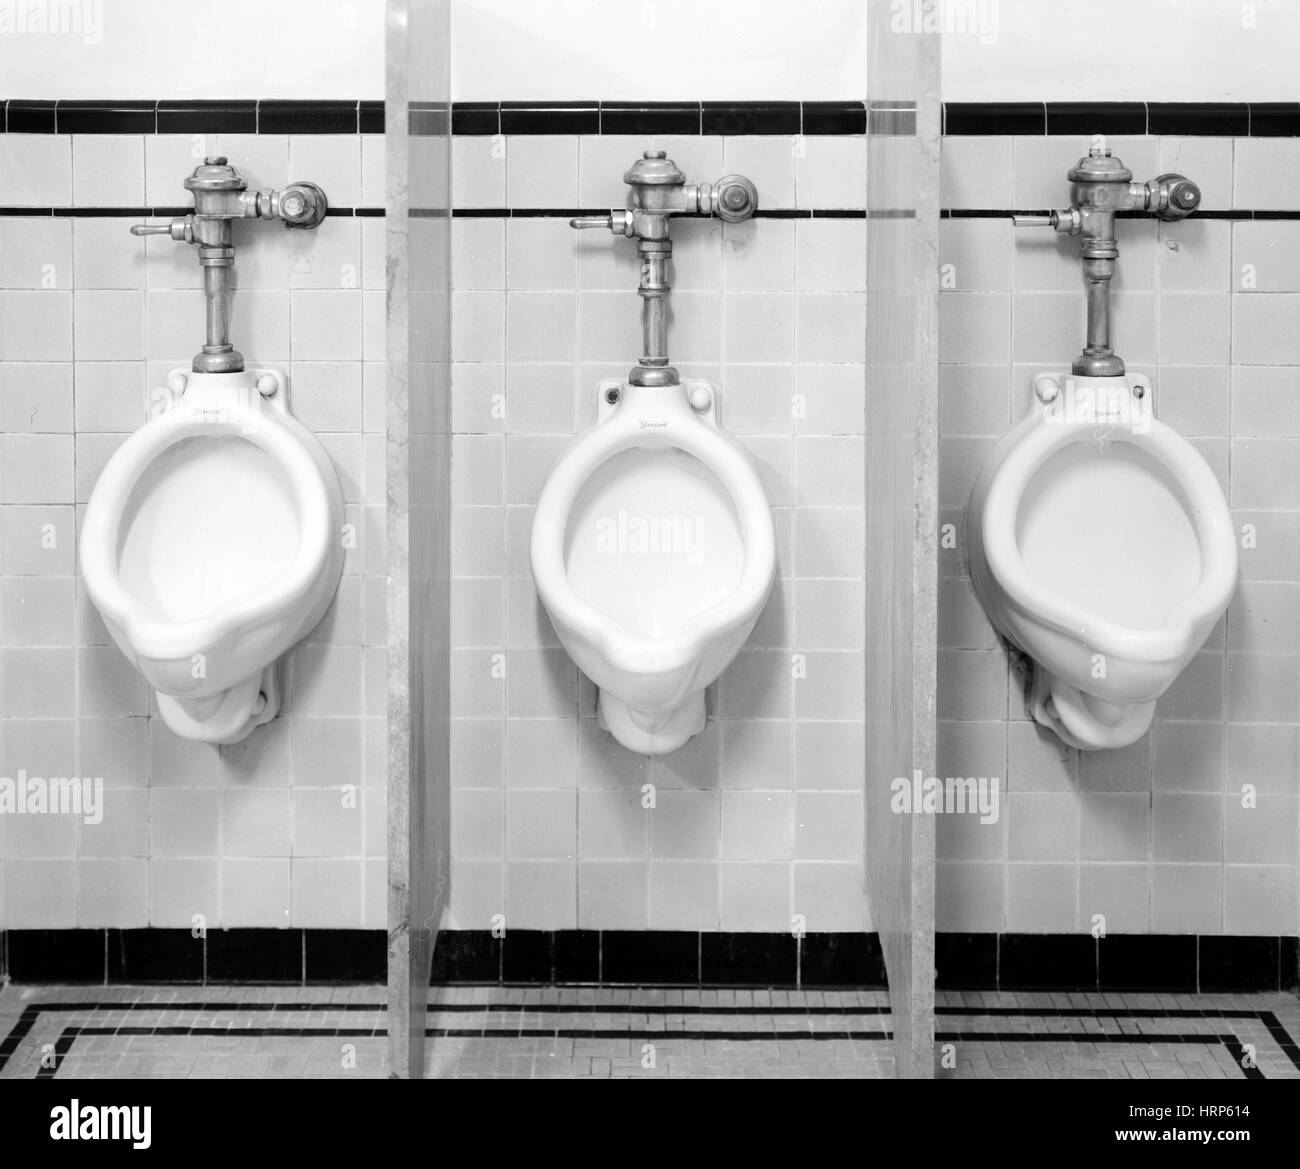 Mens Room Urinale, 1997 Stockbild